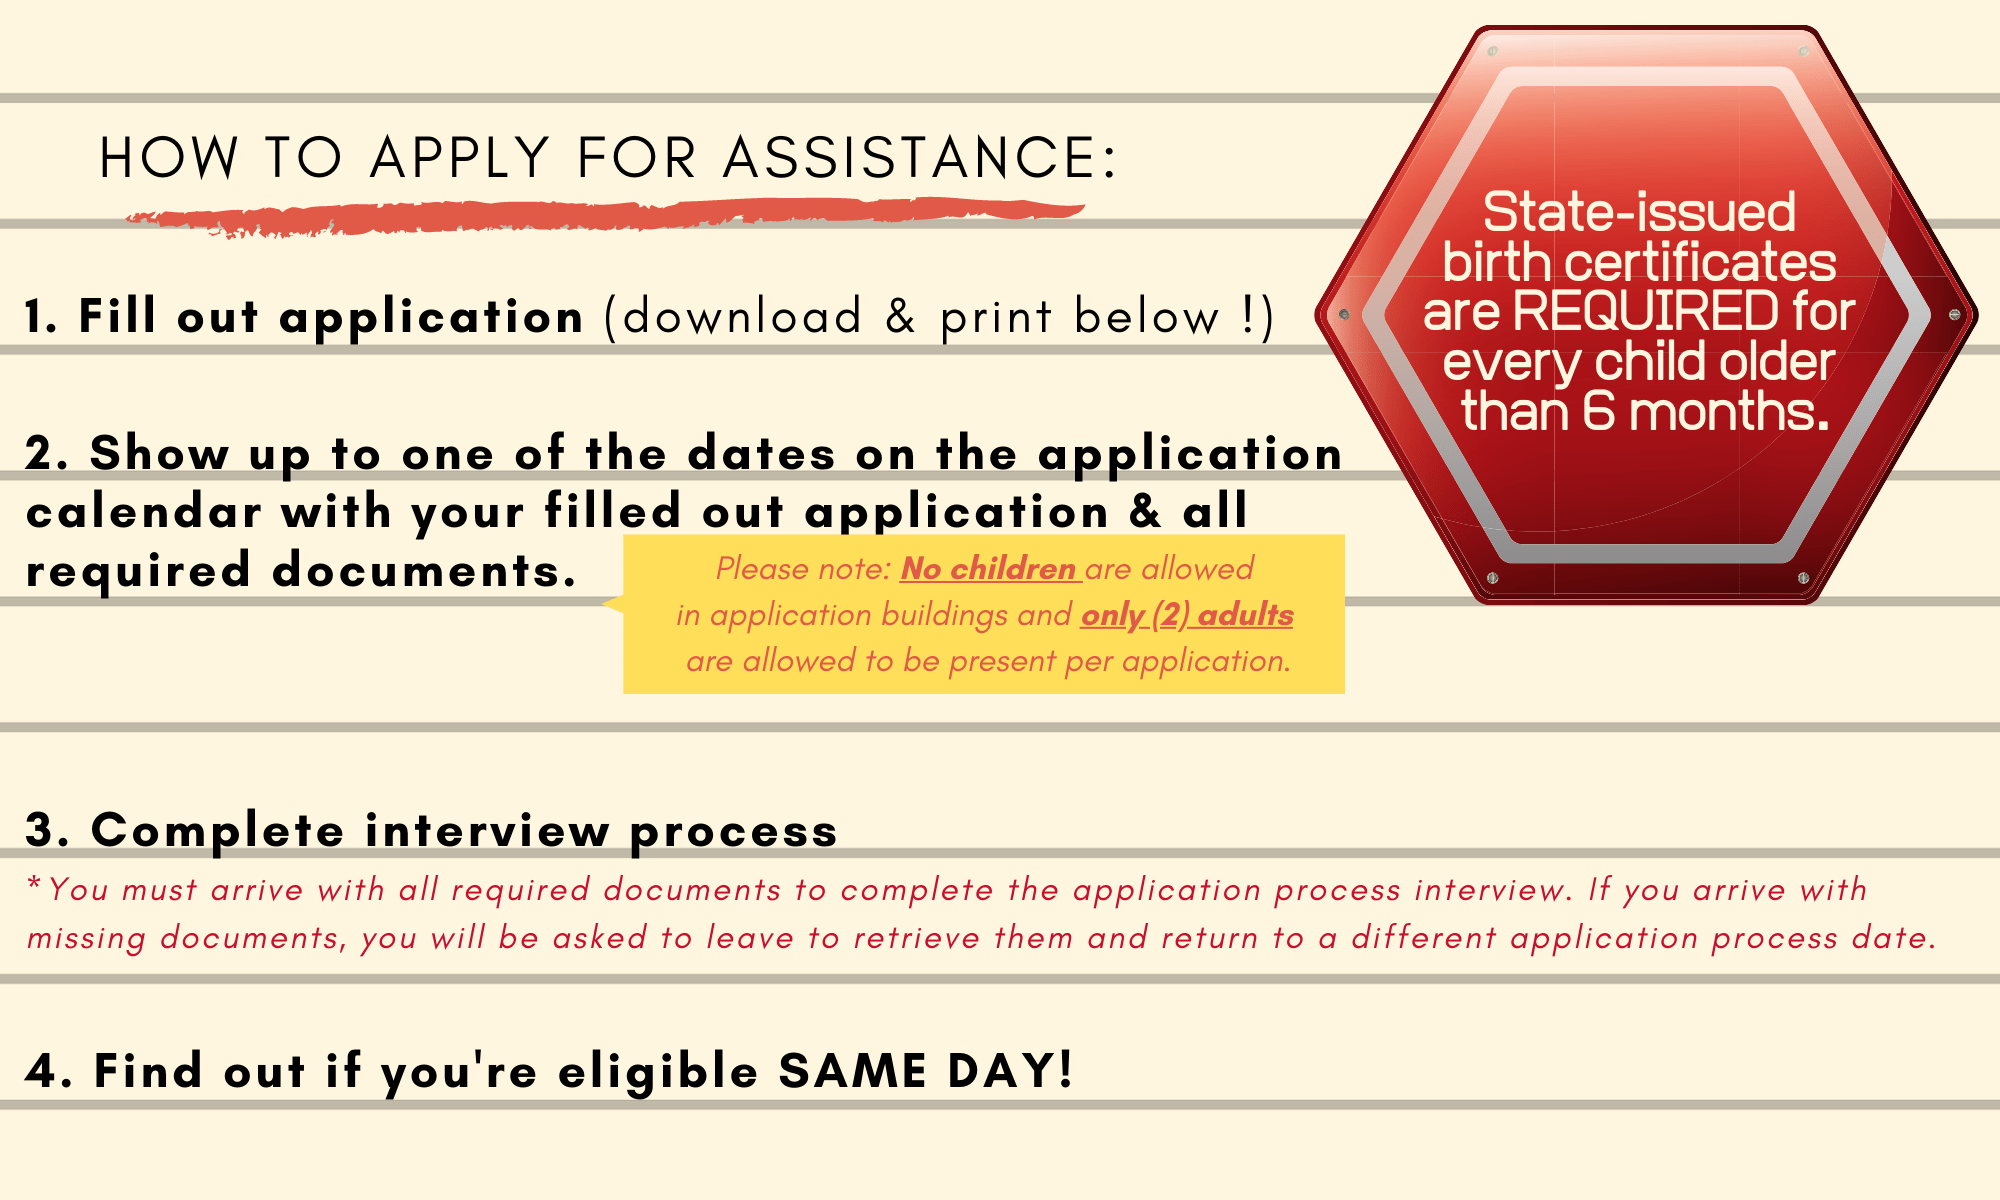 How to Apply for Assistance